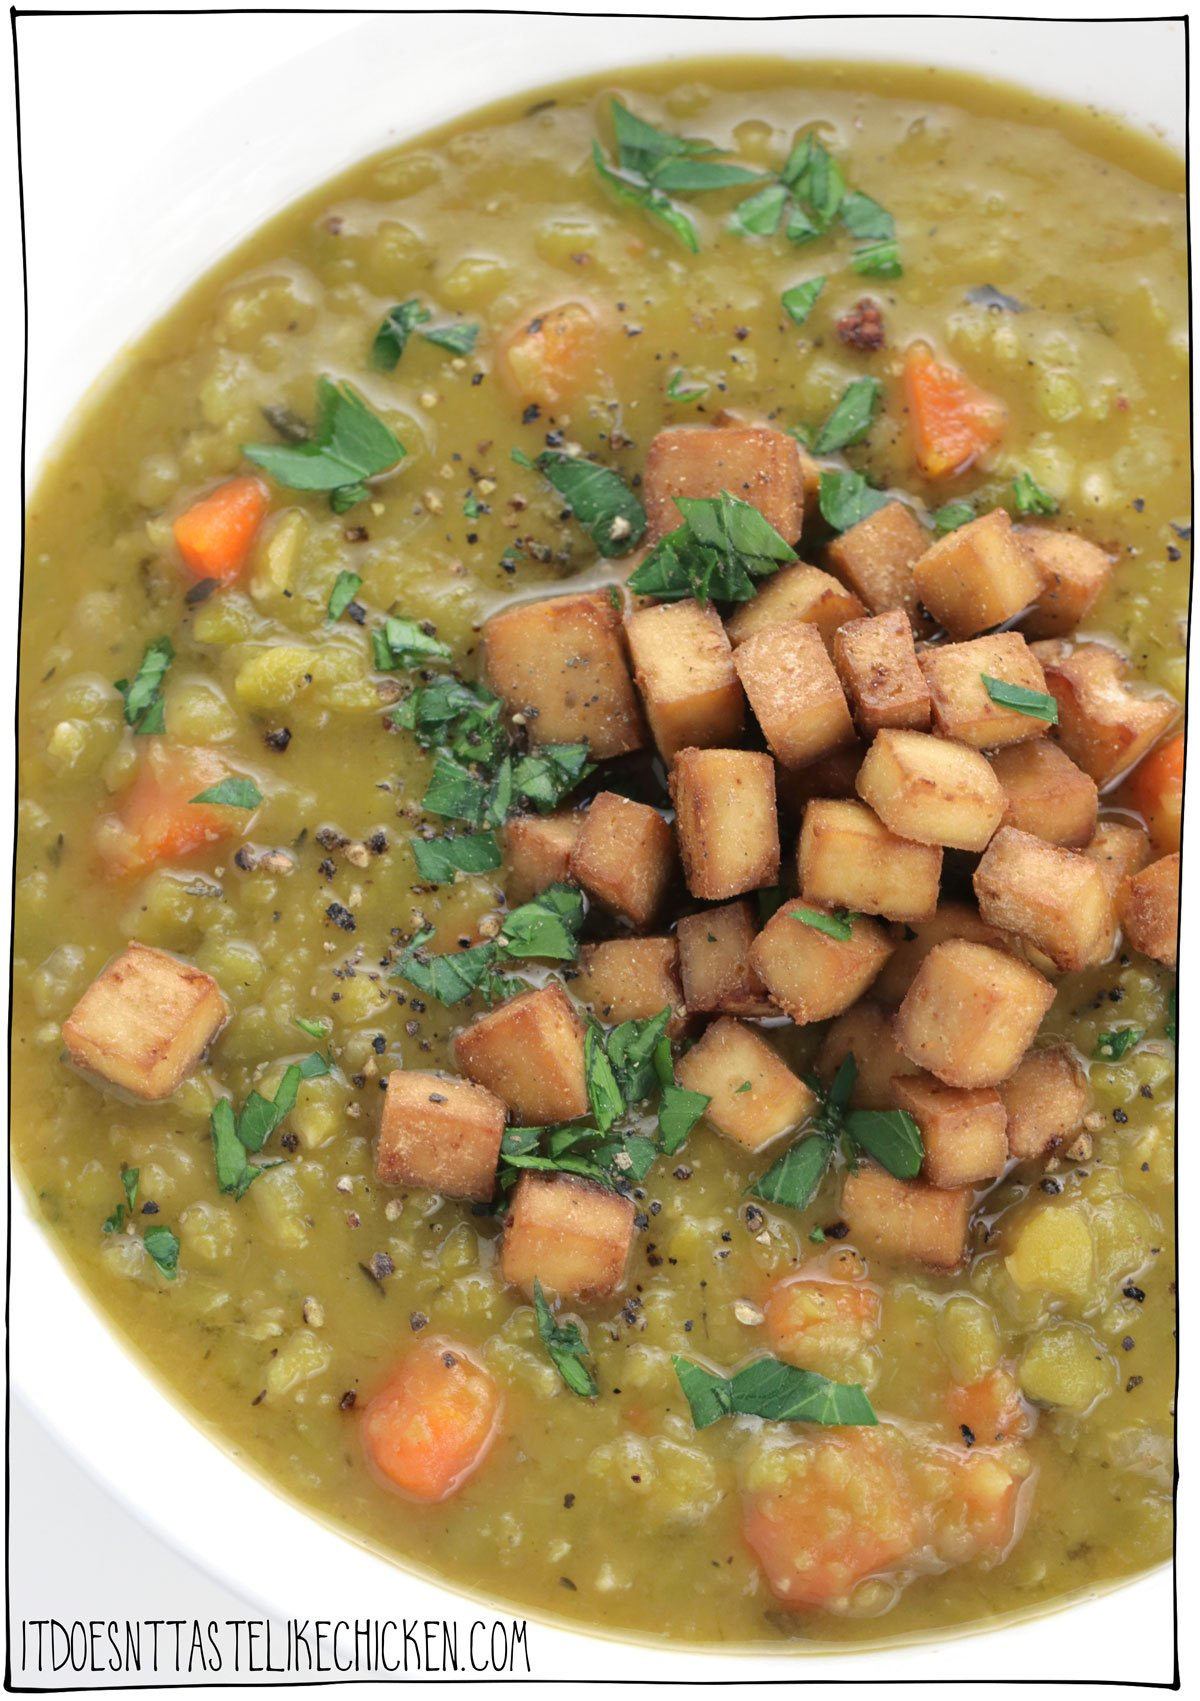 Easy Vegan Split Pea Soup with Smoky Tofu Ham! Hearty, flavor-packed, warming, and lick the bowl scrumptious! There is a reason this classic soup recipe is a staple for many: it's easy to make, it uses inexpensive ingredients, and oh my is it ever delicious. The perfect make-ahead meal. #itdoesnttastelikechicken #veganrecipes #soup